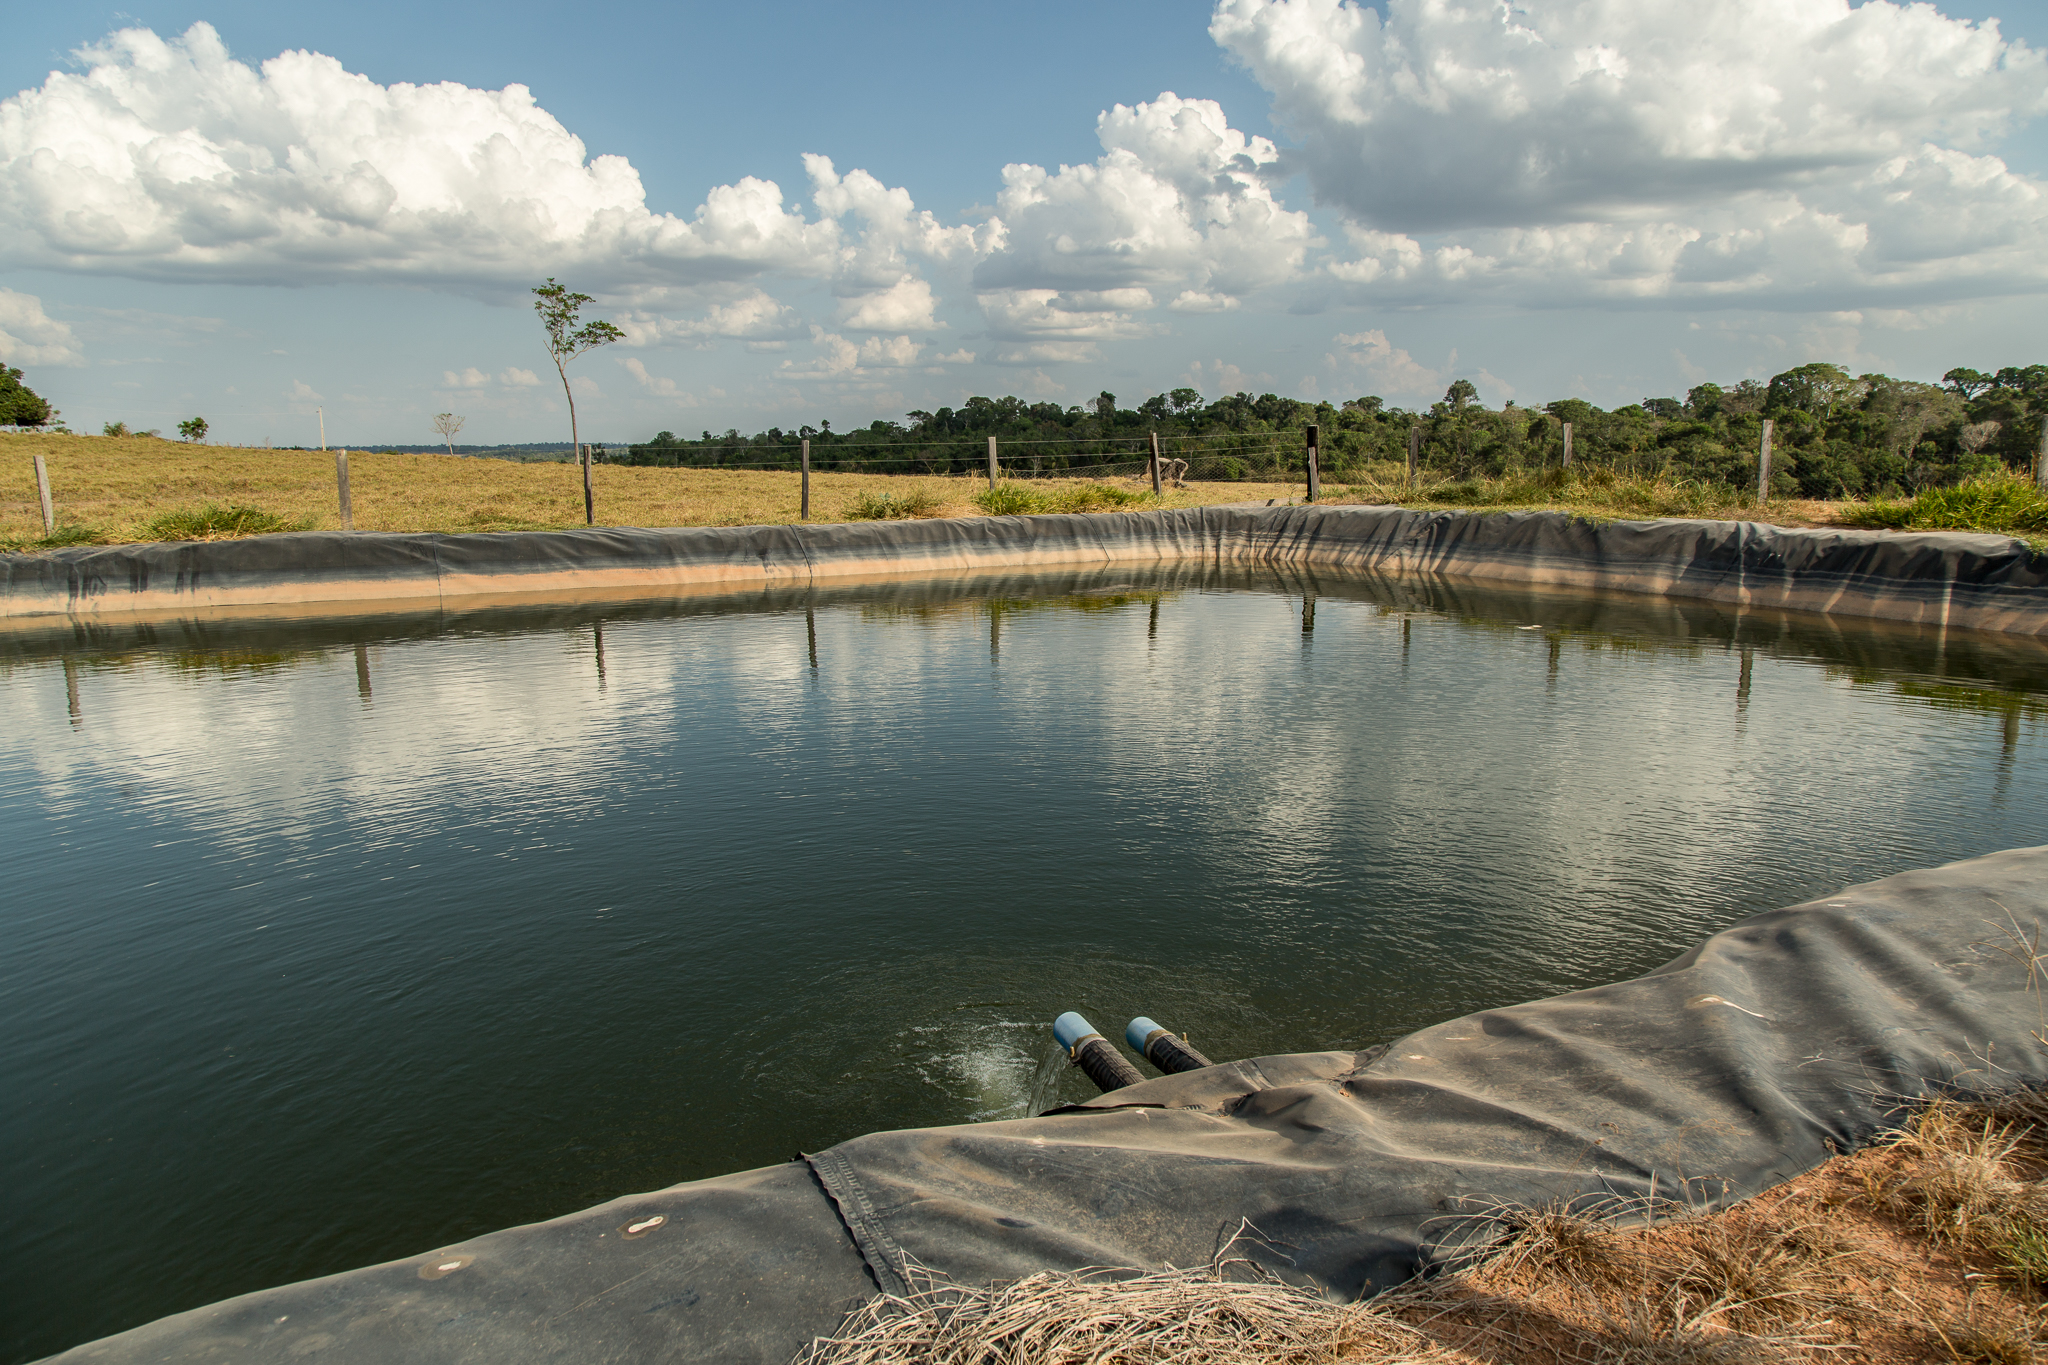 River water is piped into this holding pond and then distributed via gravity to watering troughs below. The irrigation system keeps the cattle away from rivers, streams, and springs, where their hoofs stomp out tree seedlings and cause erosion. Photograph by Christina Selby